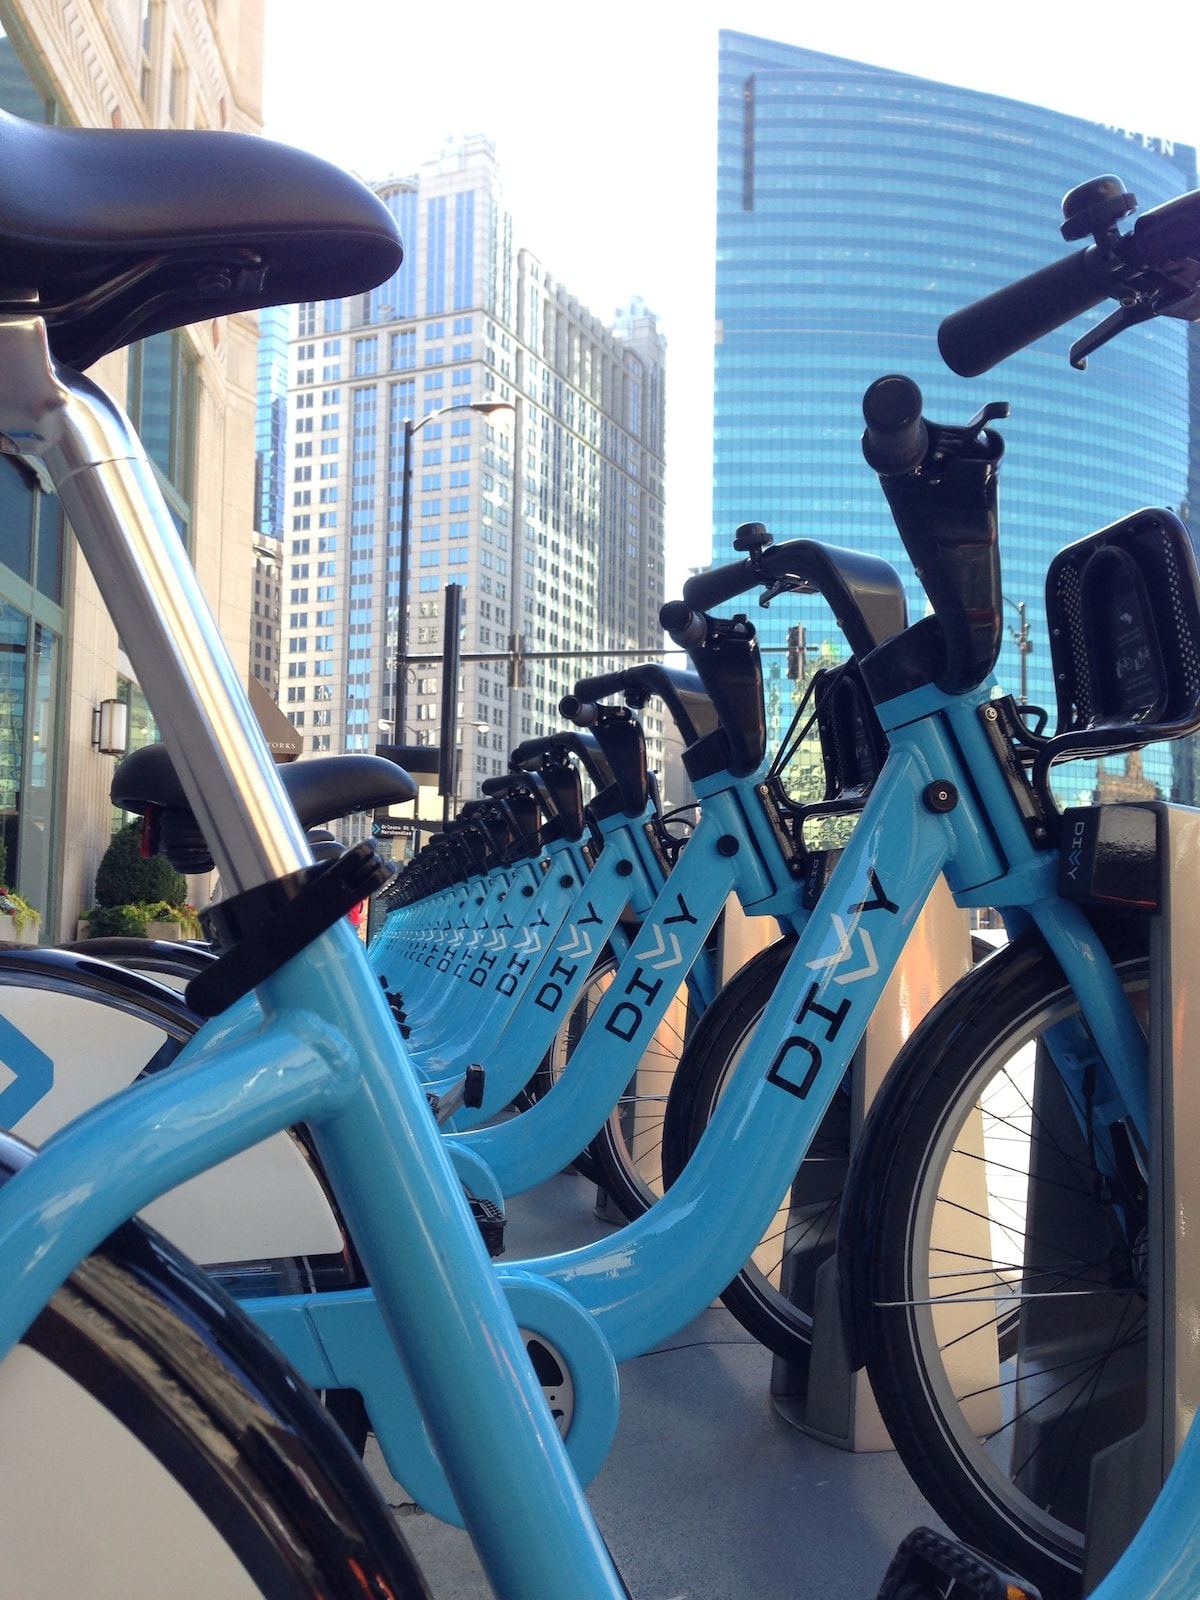 Divvy Bike Sharing station conveniently located in the corner to explore the city